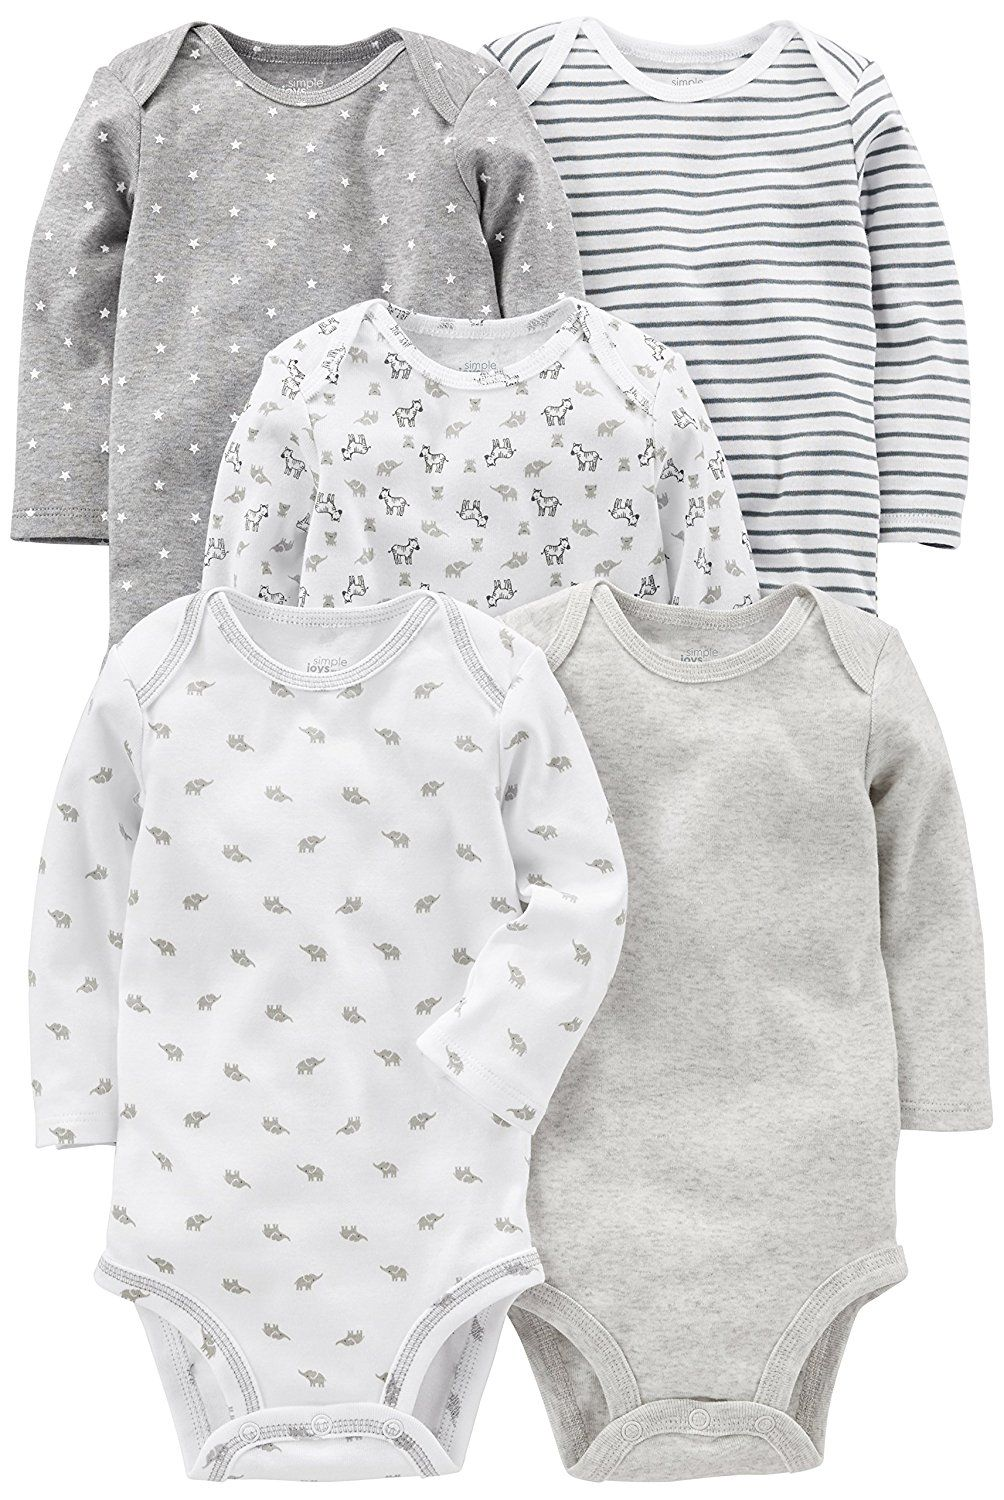 0fd72cb63 Amazon.com: Simple Joys by Carter's Baby 5-Pack Long-Sleeve Bodysuit:  Clothing